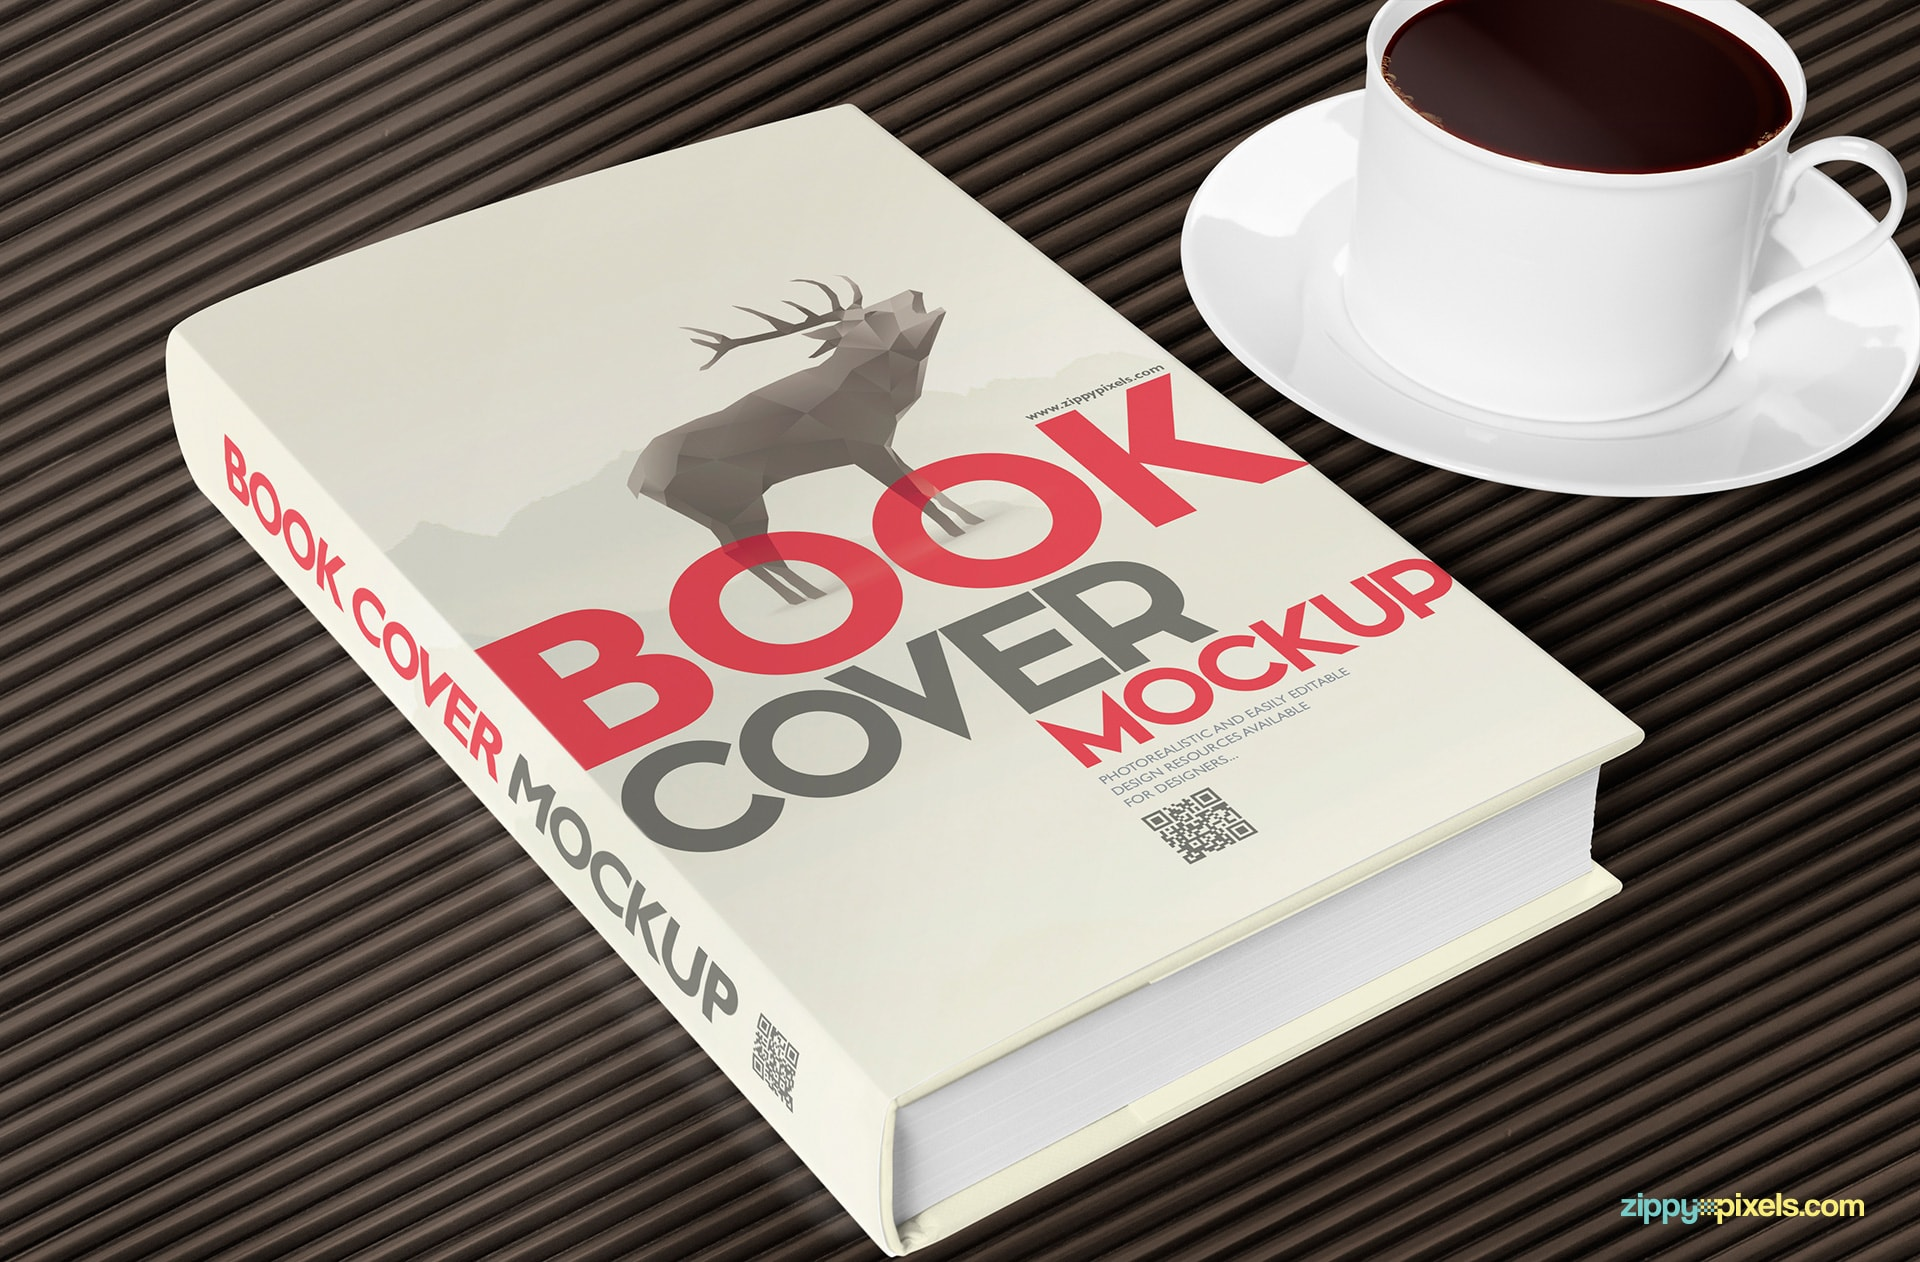 hard-cover-book-mockup-with-coffee-cup-spine-view